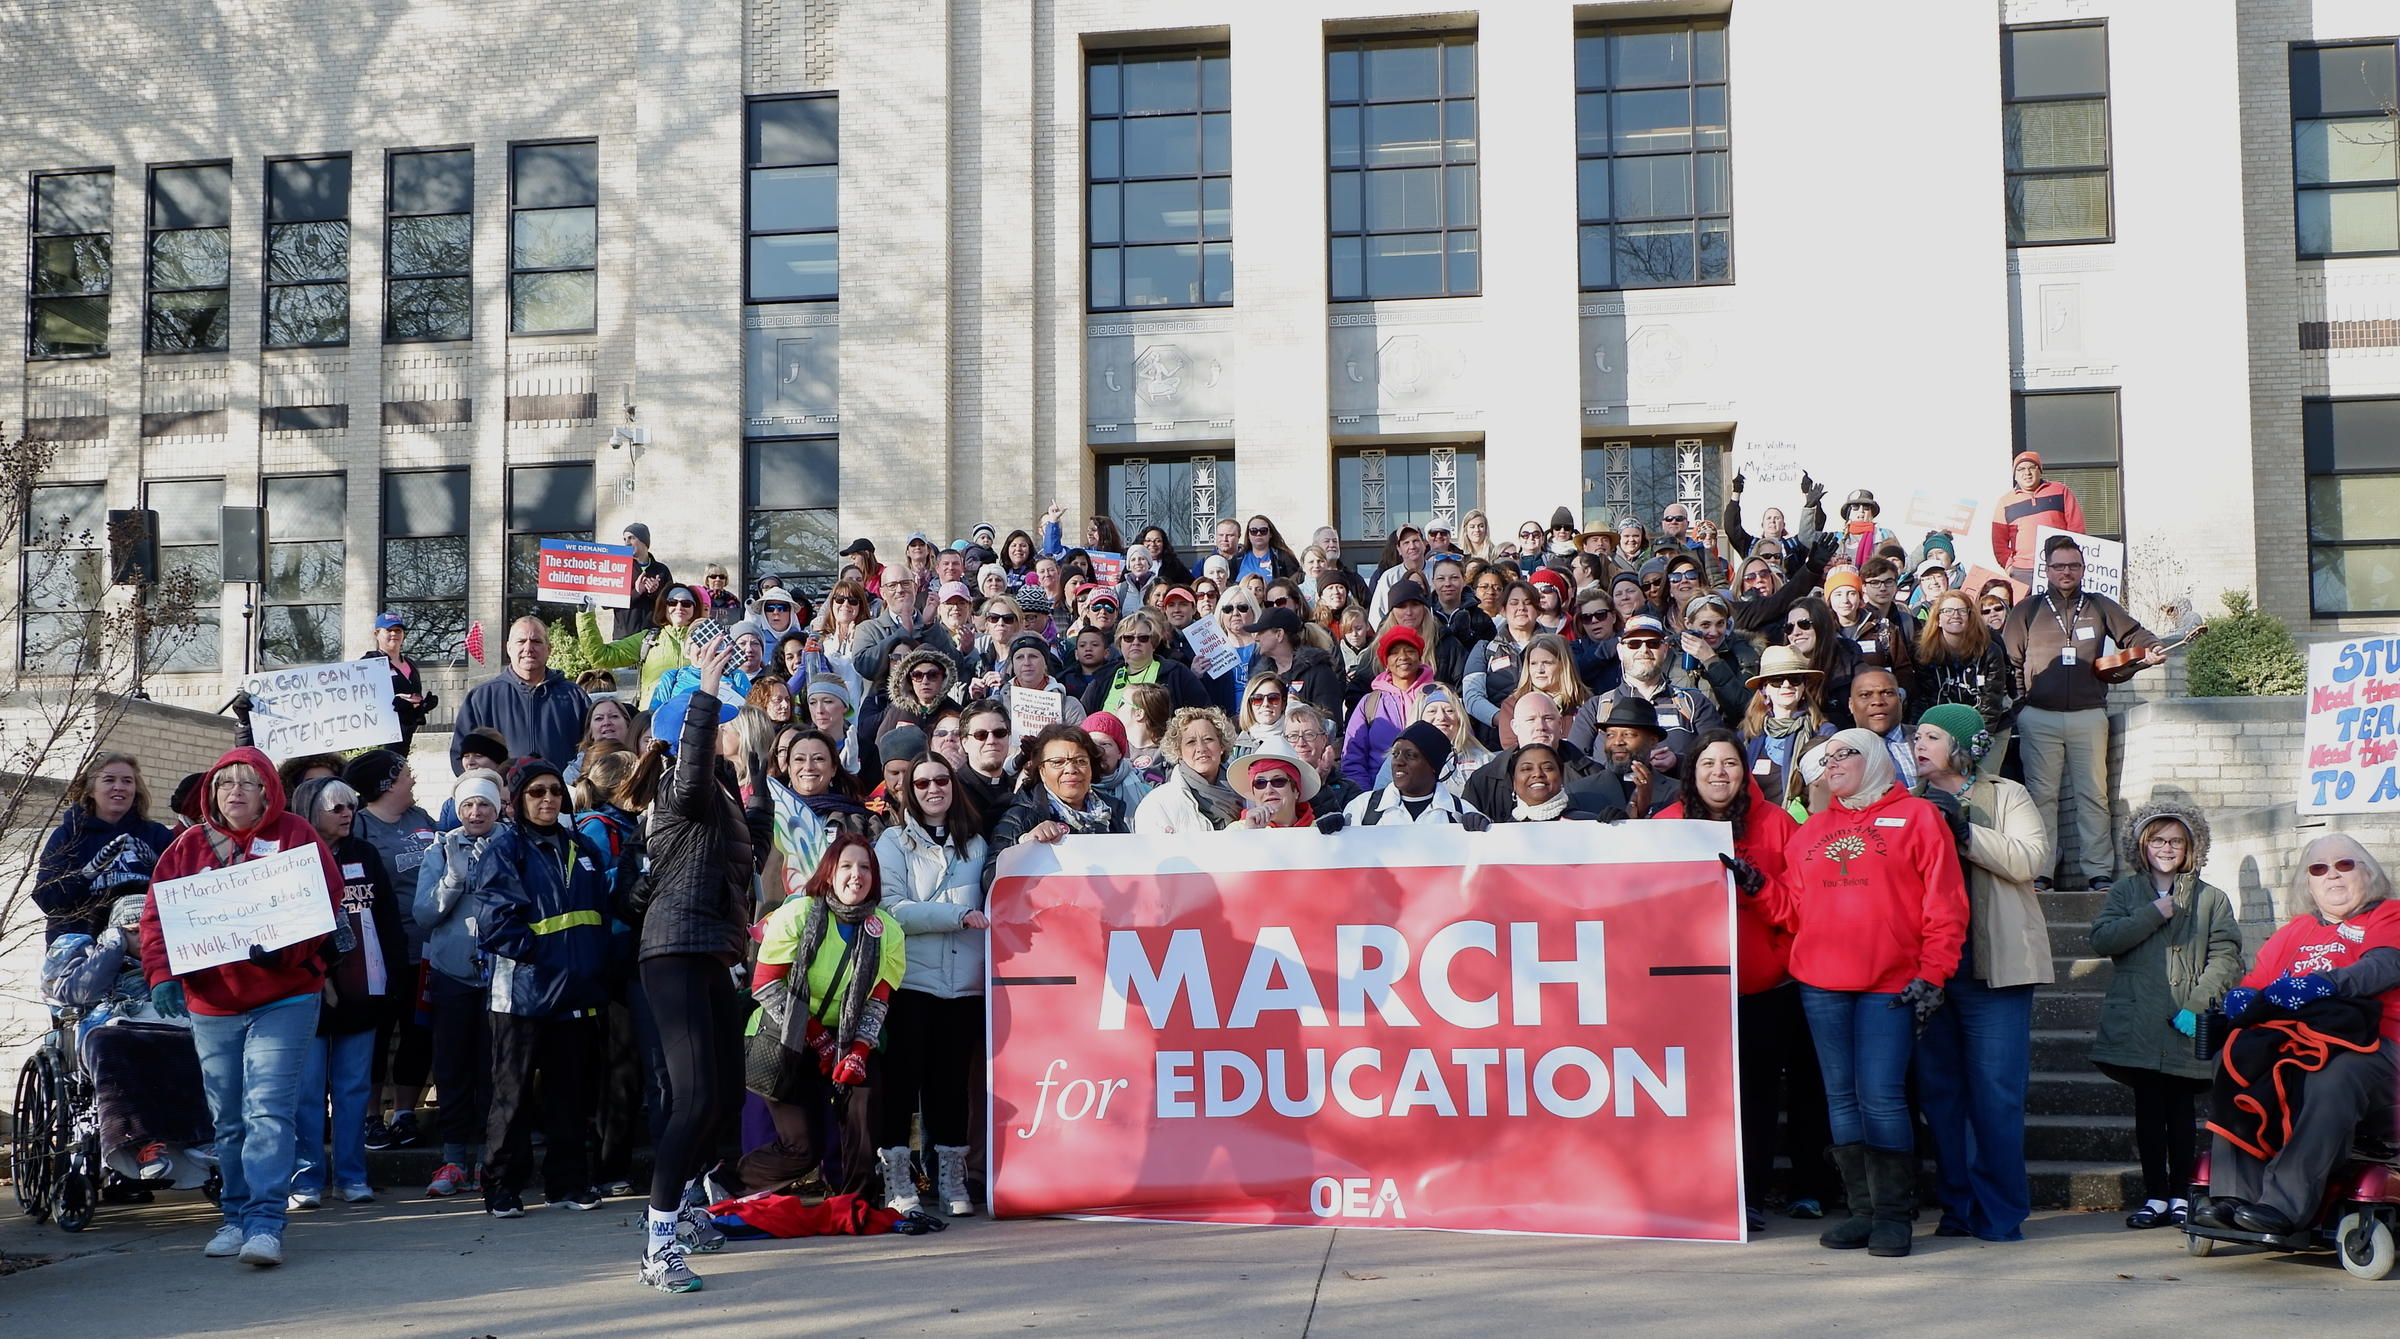 'They're depriving their students of education,' retired teacher on Okla. protests